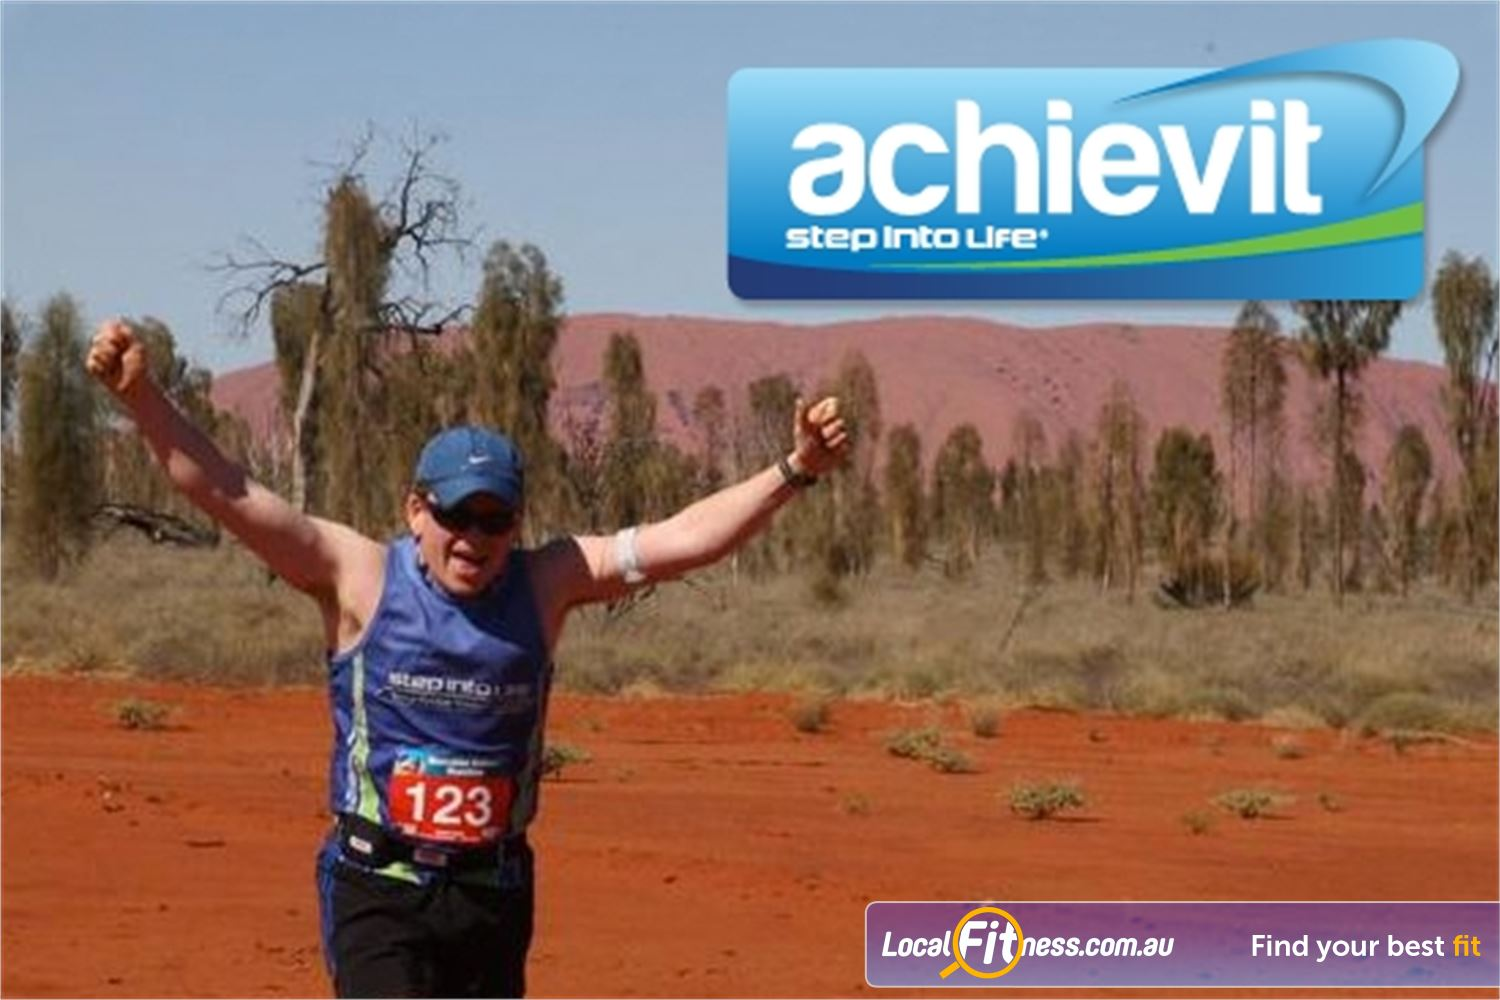 Step into Life Essendon Achievit will help you prepare for your favorite fitness events.